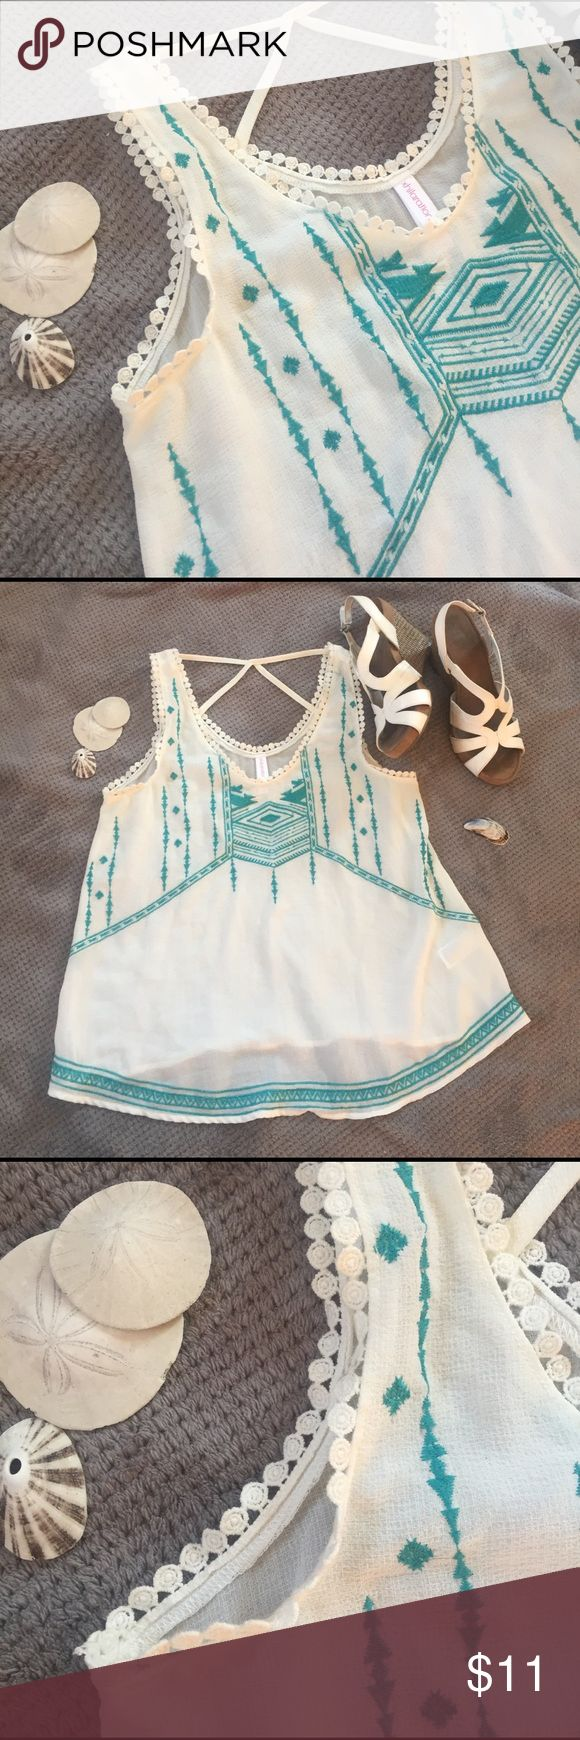 Aztec Print Tank Top Very cute and flattering white Aztec print top. Fun strappy back. Semi-sheer, not too see-through. The stitching is like a dark aqua. Gently used, no damage. Xhilaration Tops Tank Tops